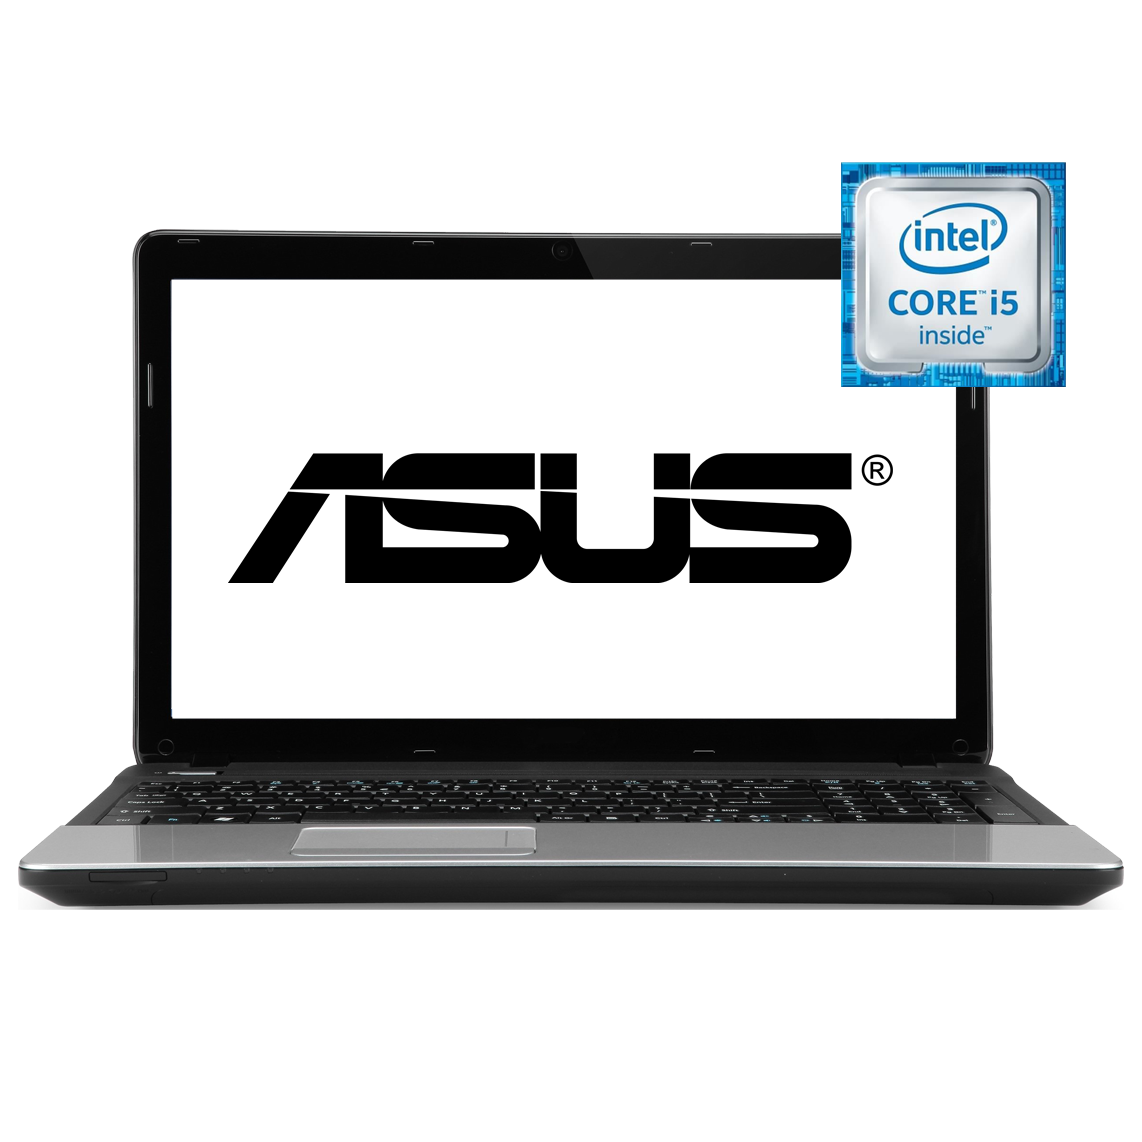 ASUS - 13.3 inch Core i5 2nd Gen